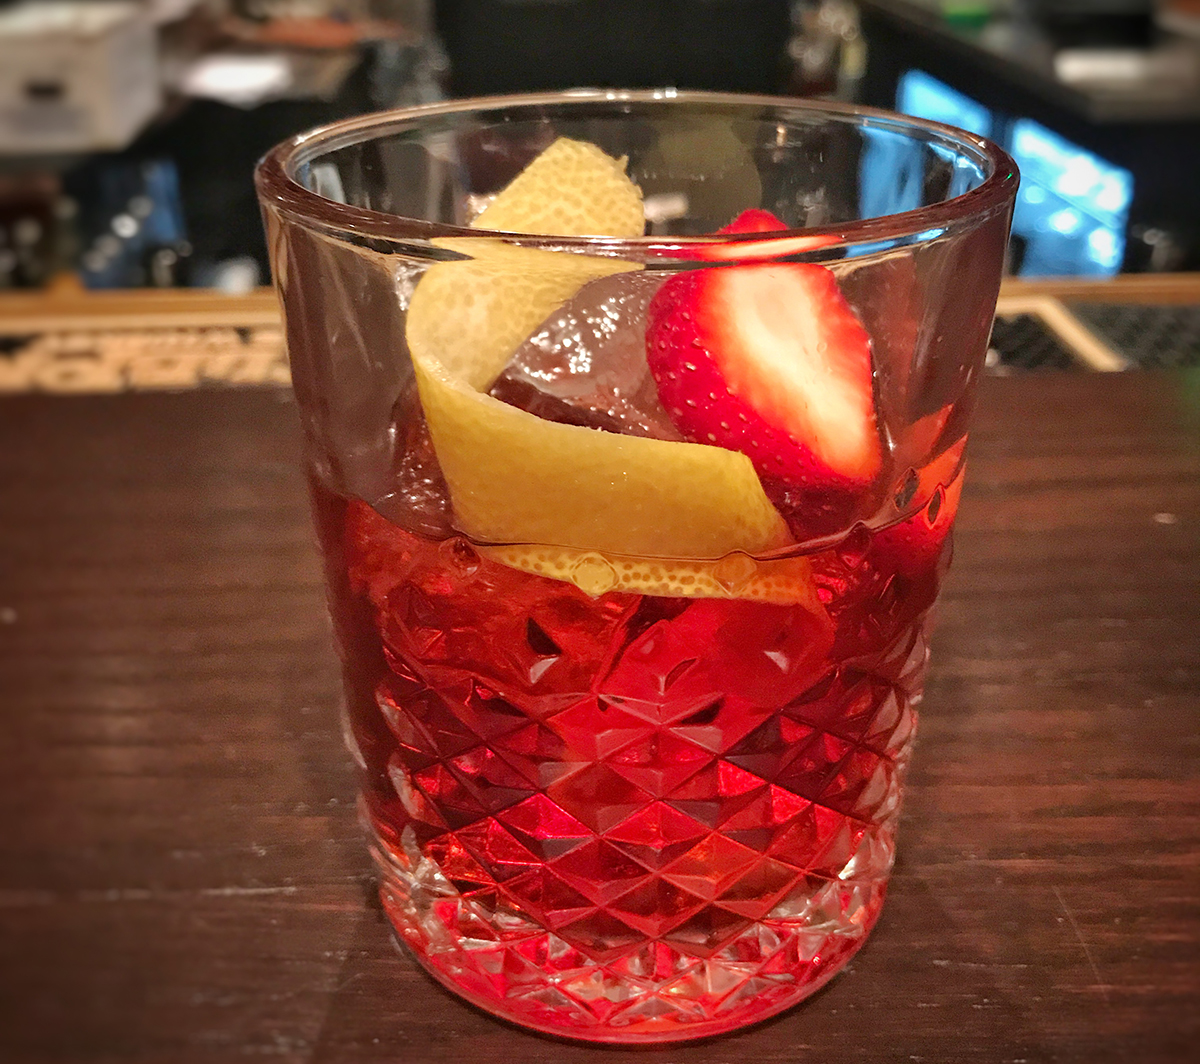 A strawberry-infused negroni is on special at Saloon during Negroni Week 2017